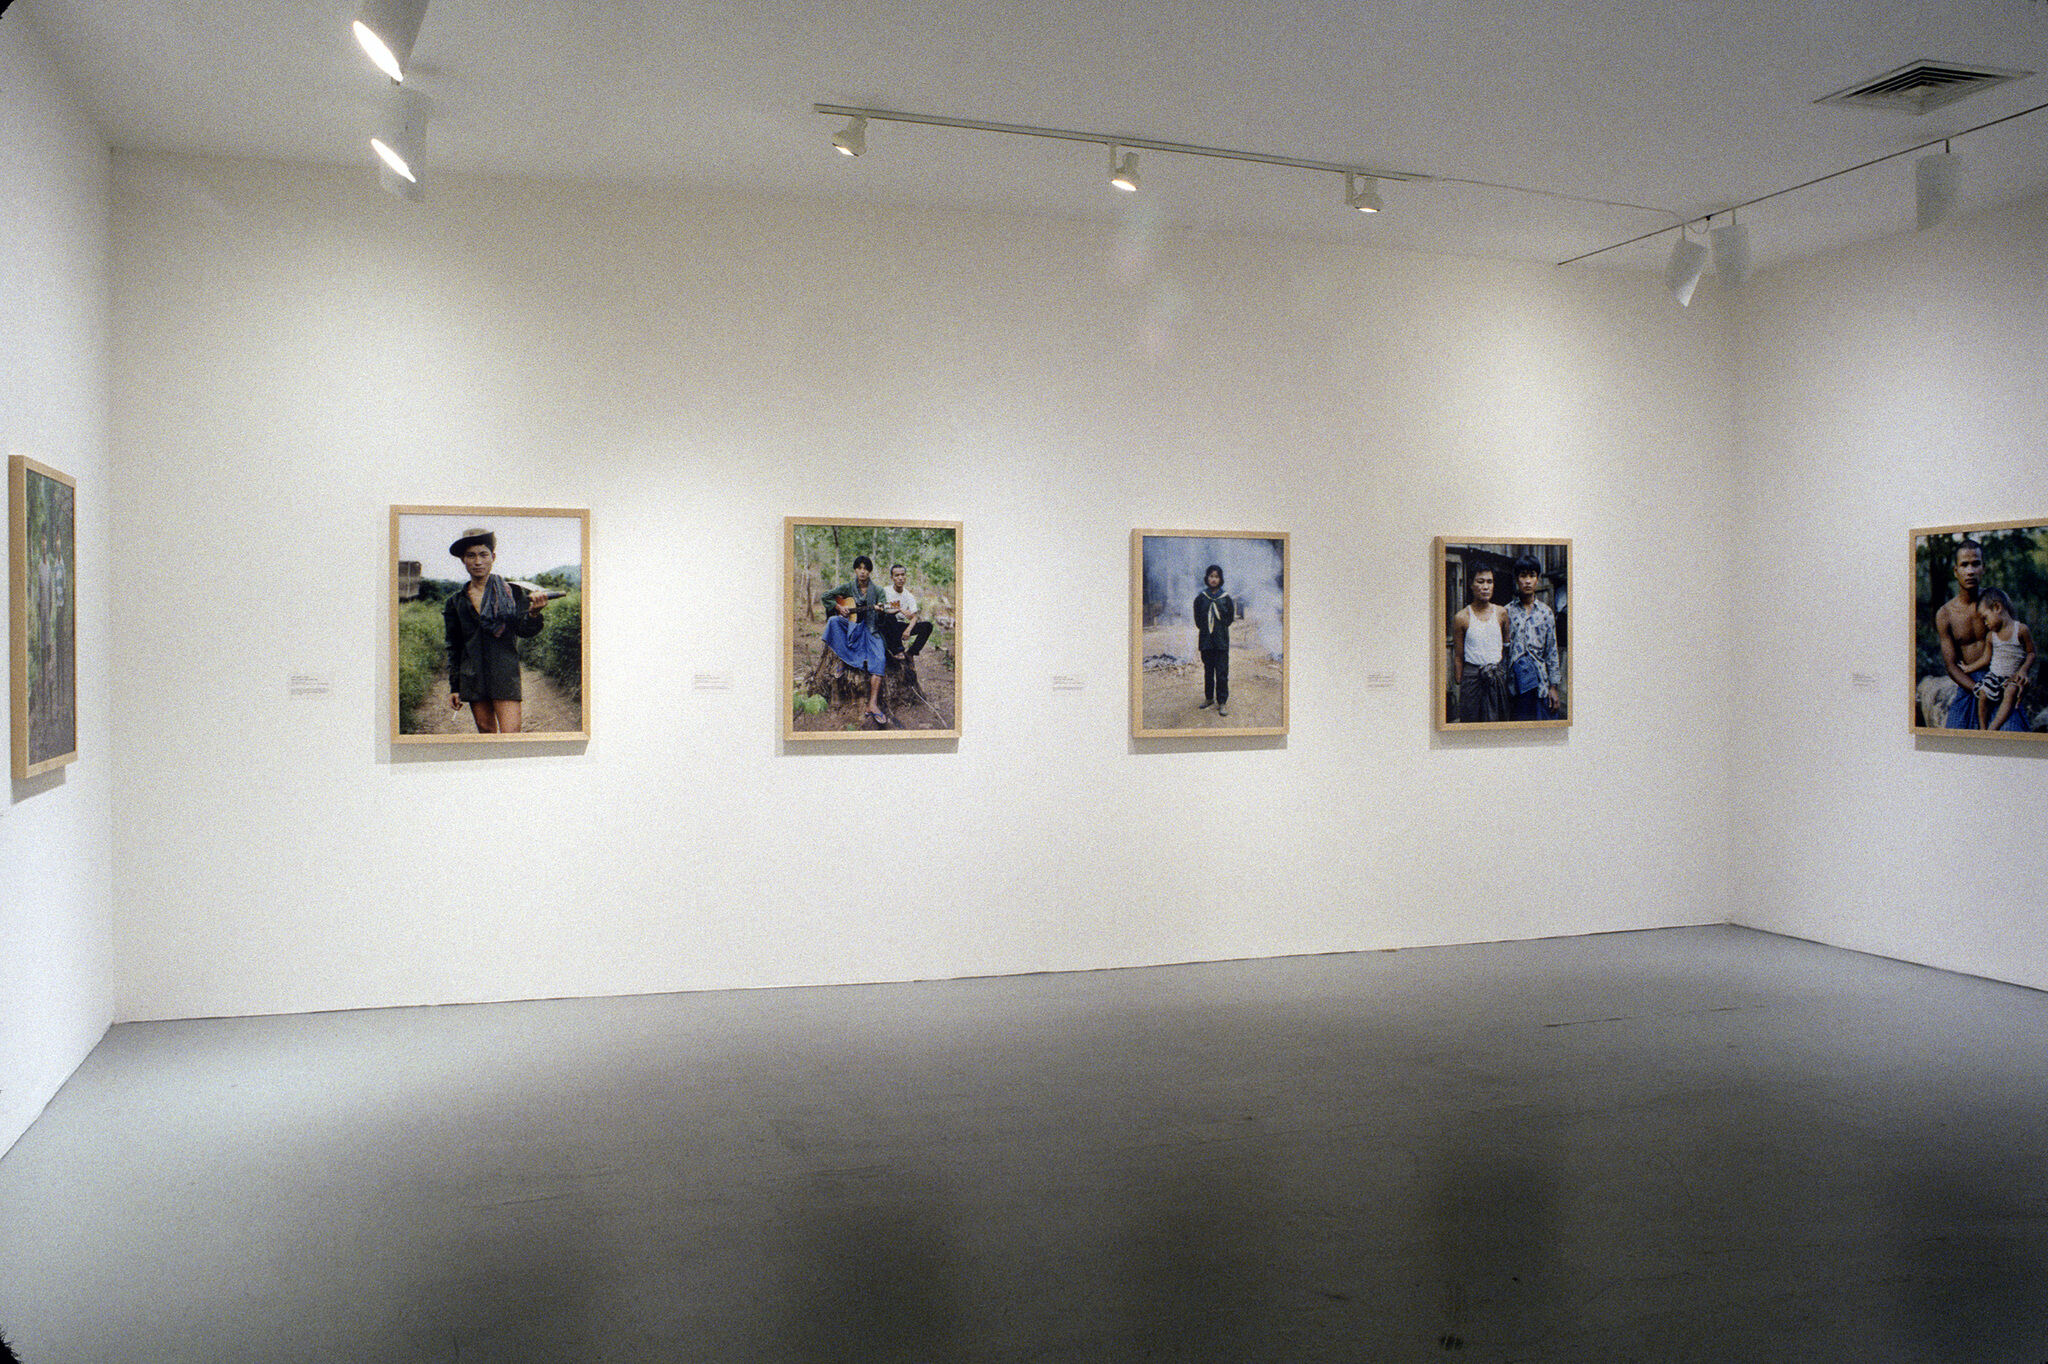 A gallery filled with photographs of people.